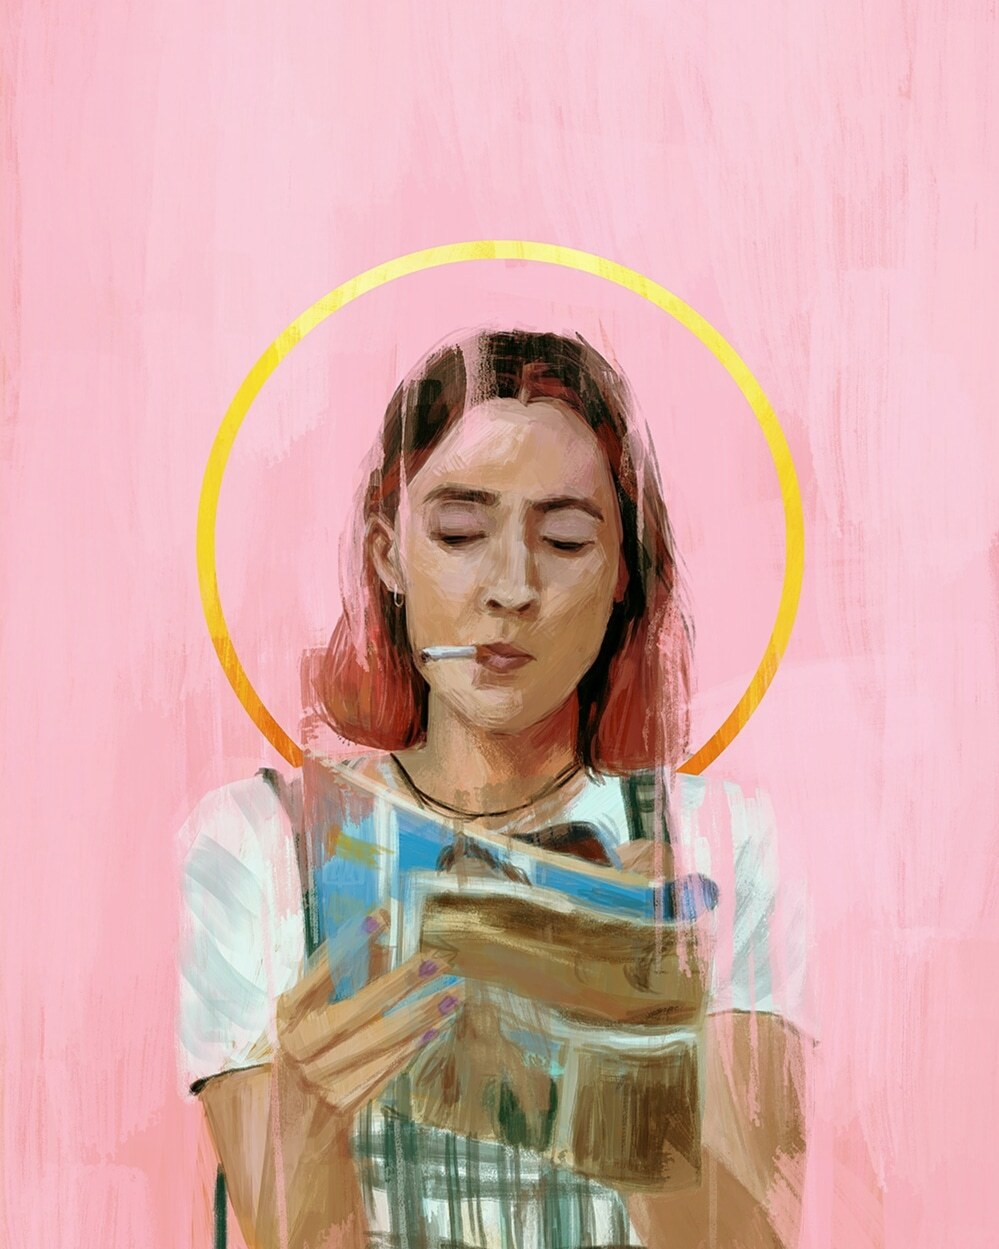 """You're not gonna get in a car with a guy that honks, are ya?""~Lady Bird - Illustration by Relly Coquia"